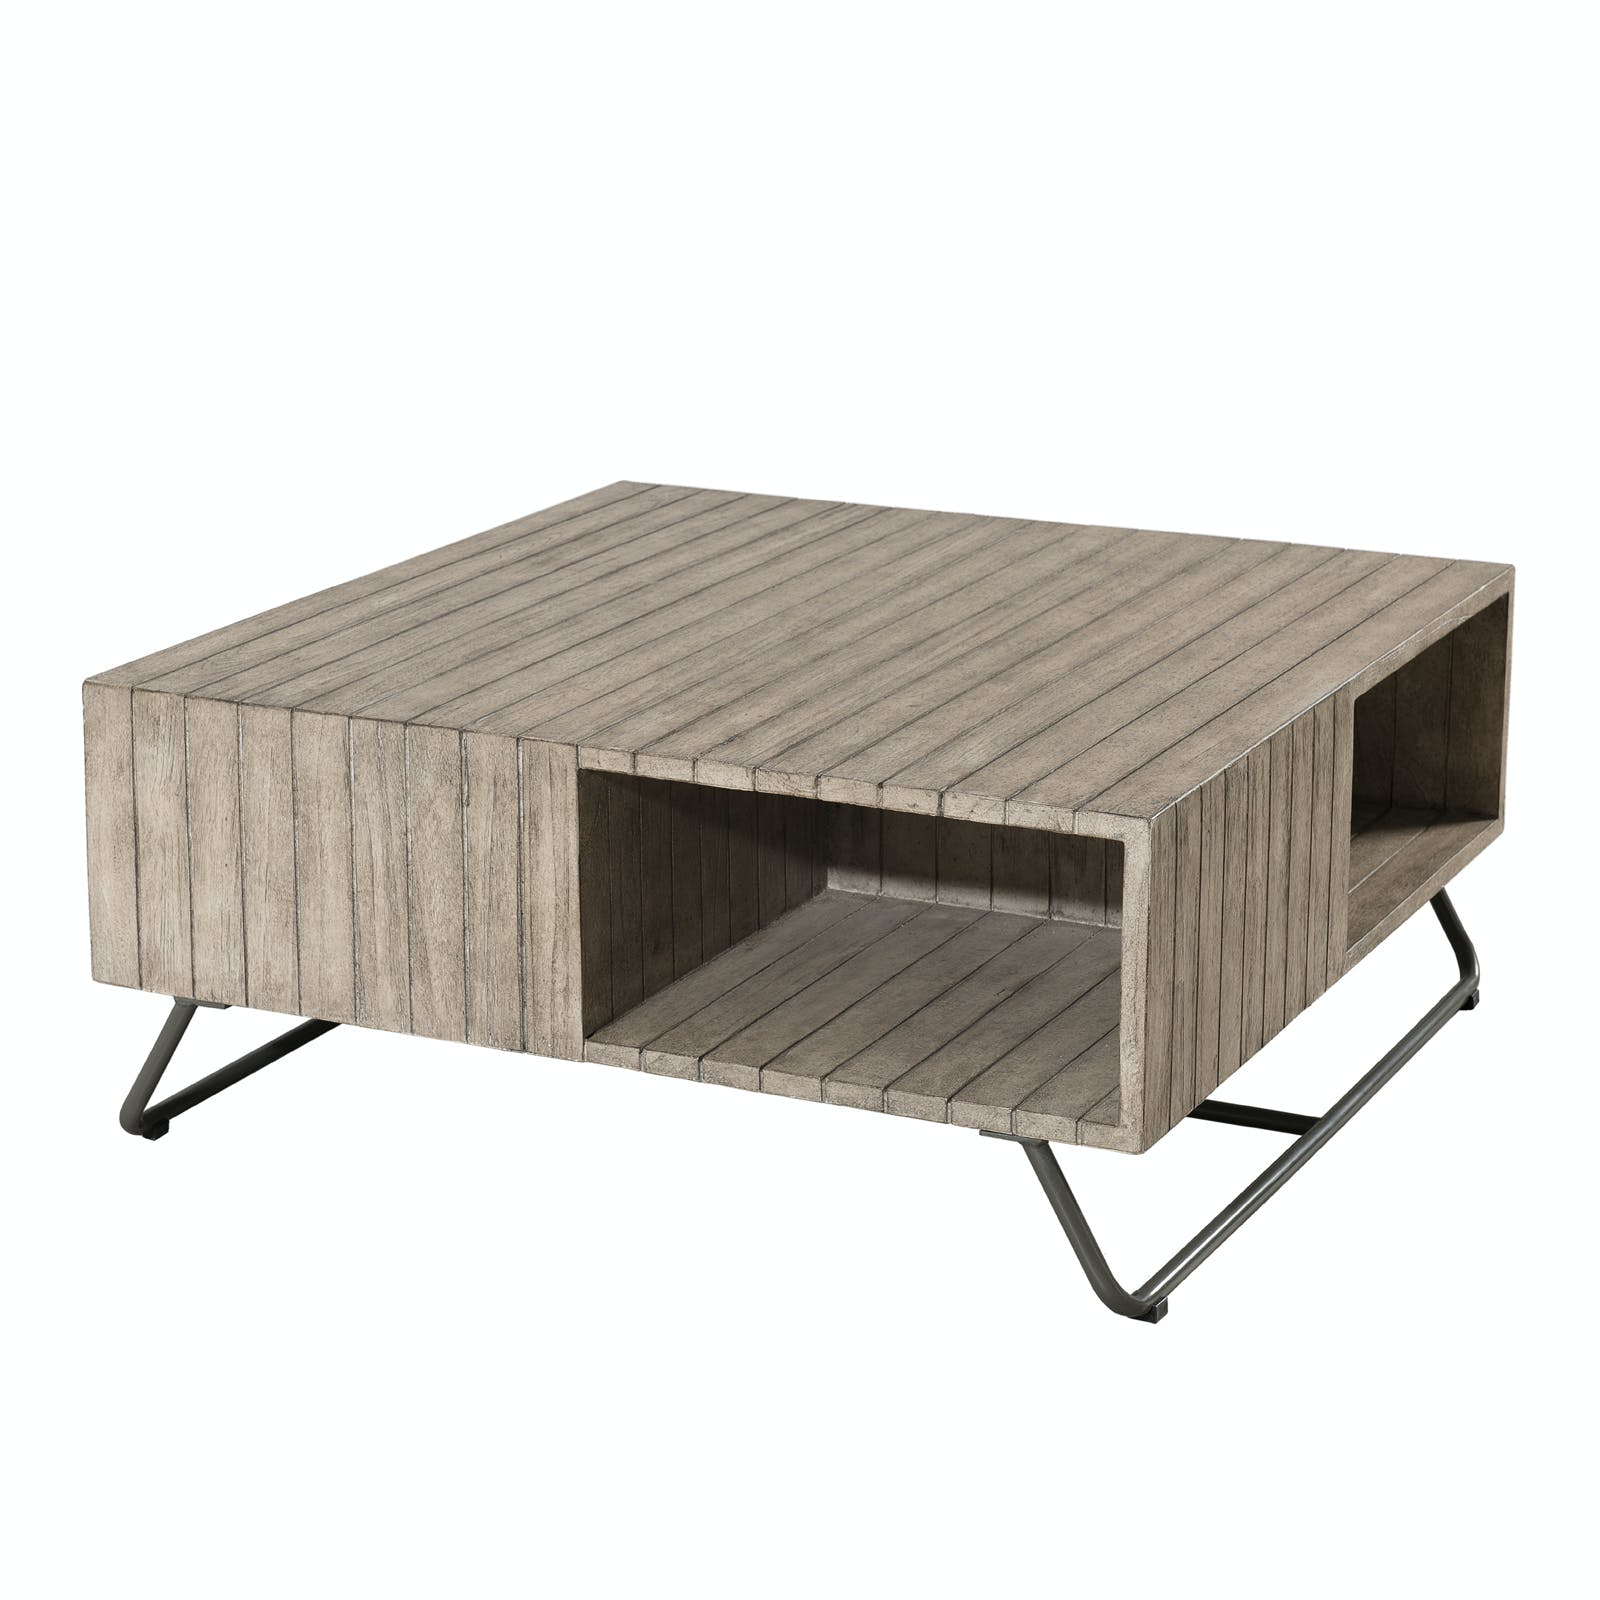 Table basse Jardin Teck carrée 90x90cm DETROIT ref. 30020819